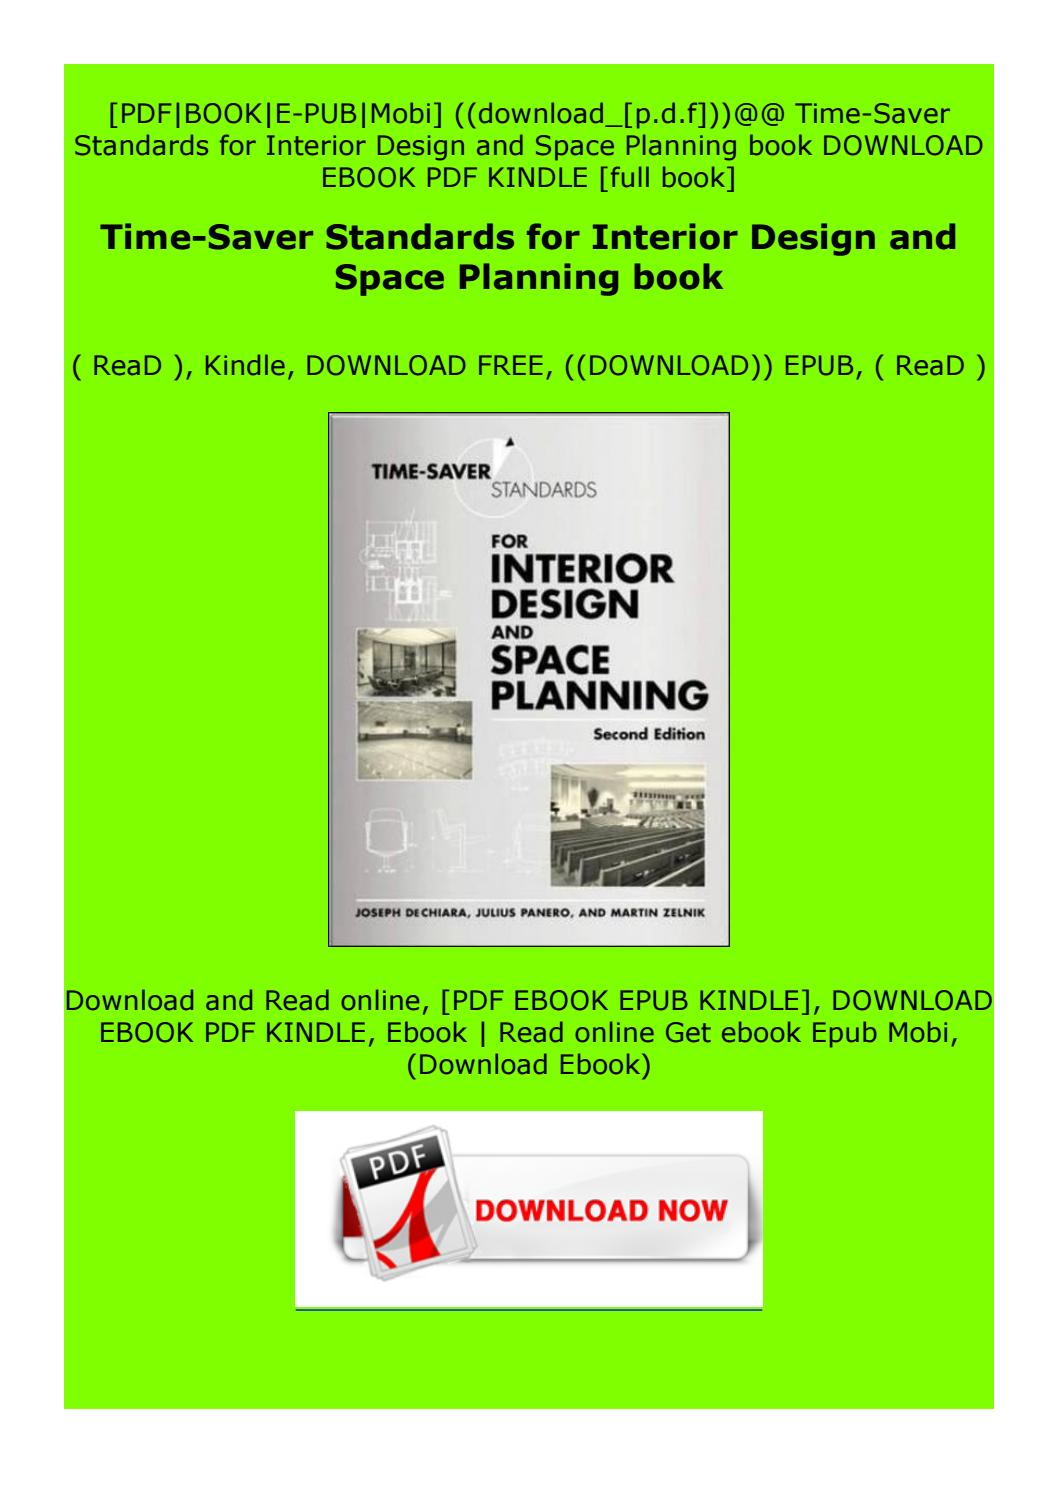 Read Online Time Saver Standards For Interior Design And Space Planning Book By Wdstfdgtddvze Issuu